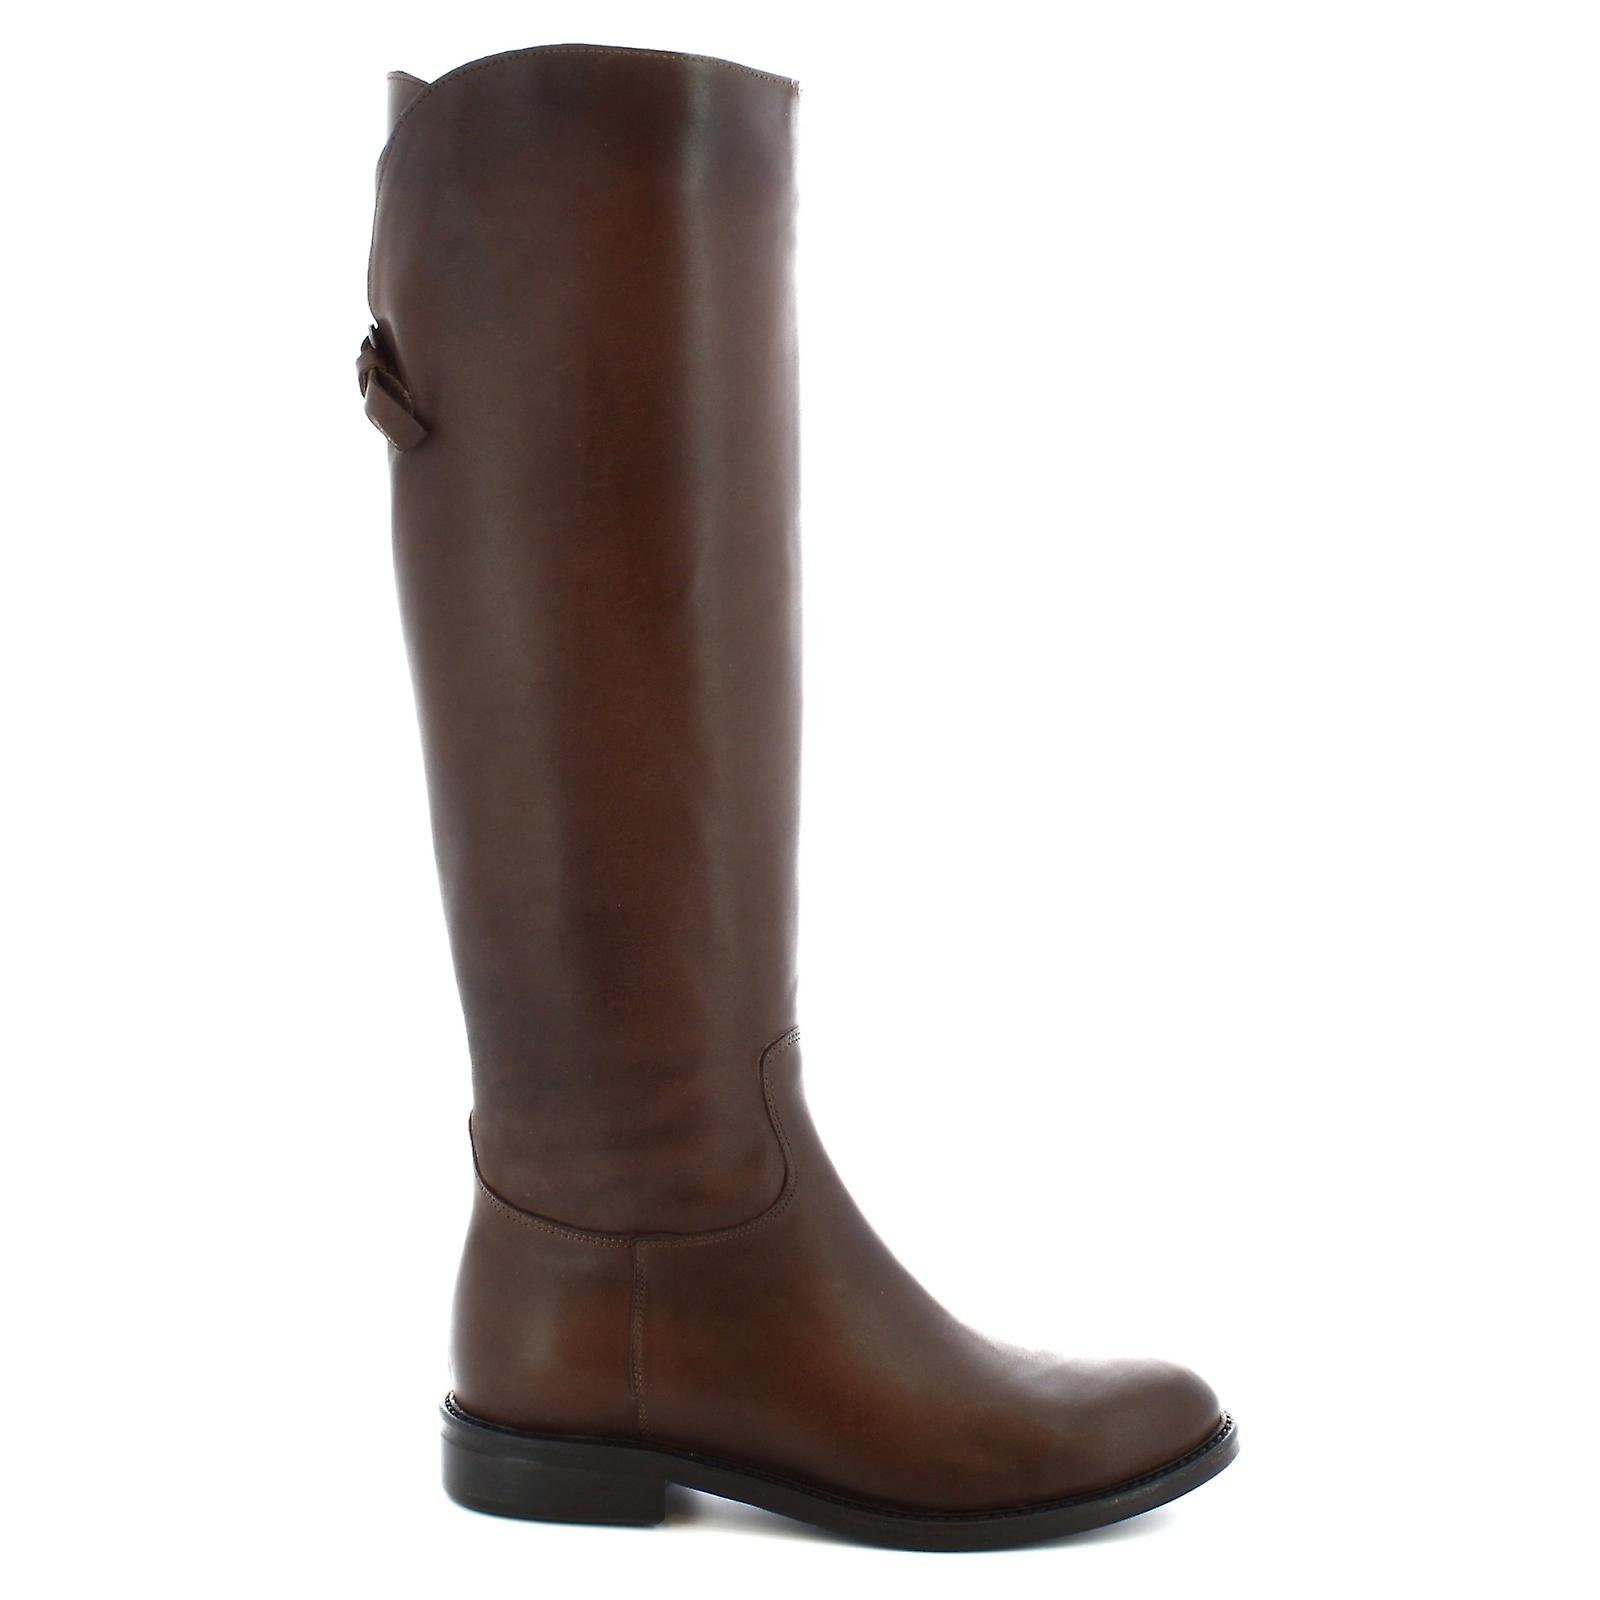 Leonardo Shoes Women's handmade boots in dark brown calf leather side zip